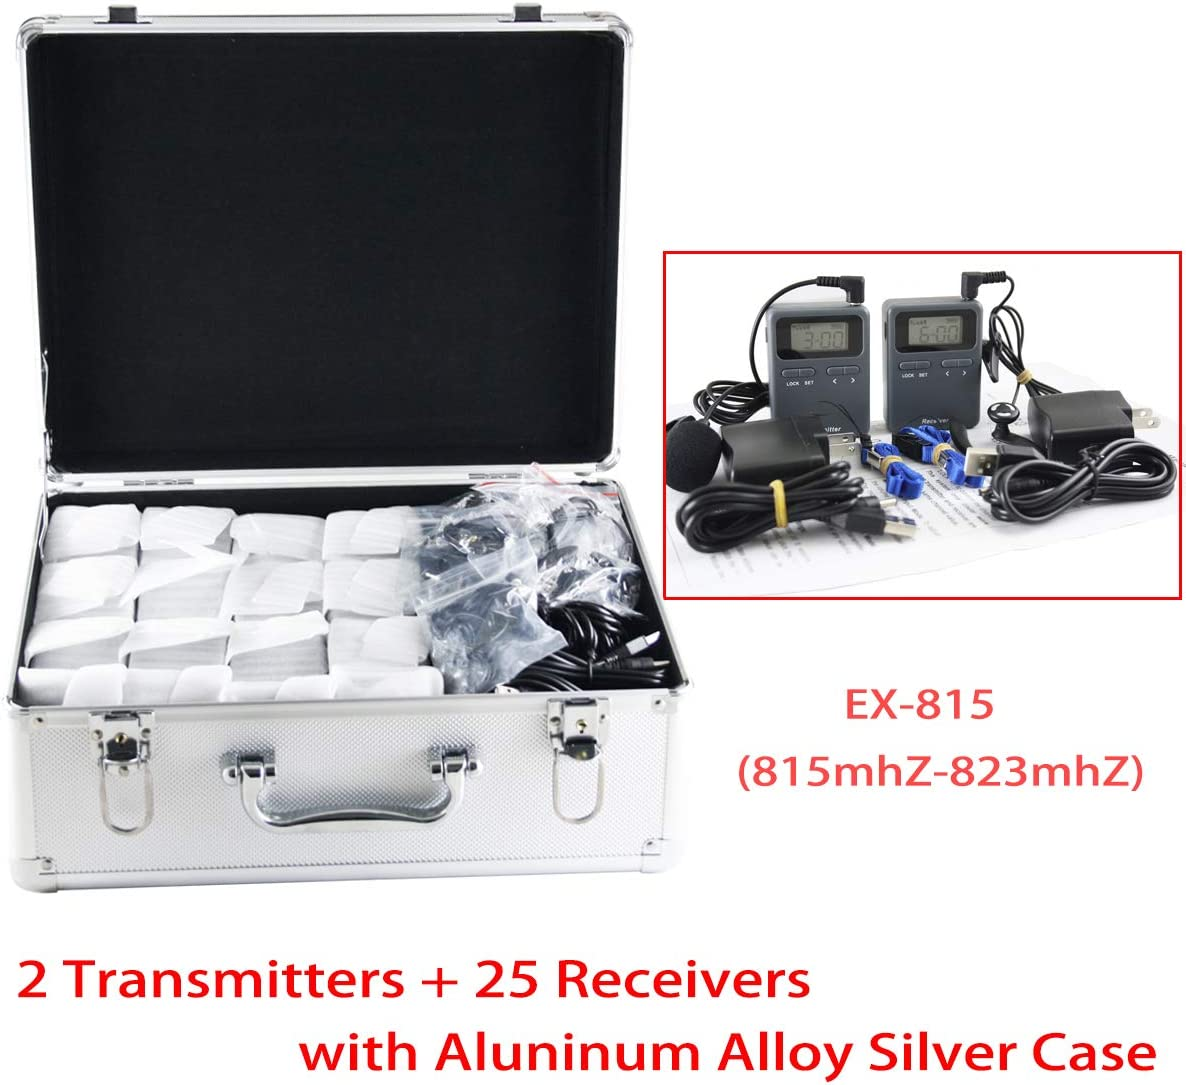 EXMAX UHF 99 Channels Wireless 70% OFF Outlet Acoustic Transmission Tou Whisper Department store